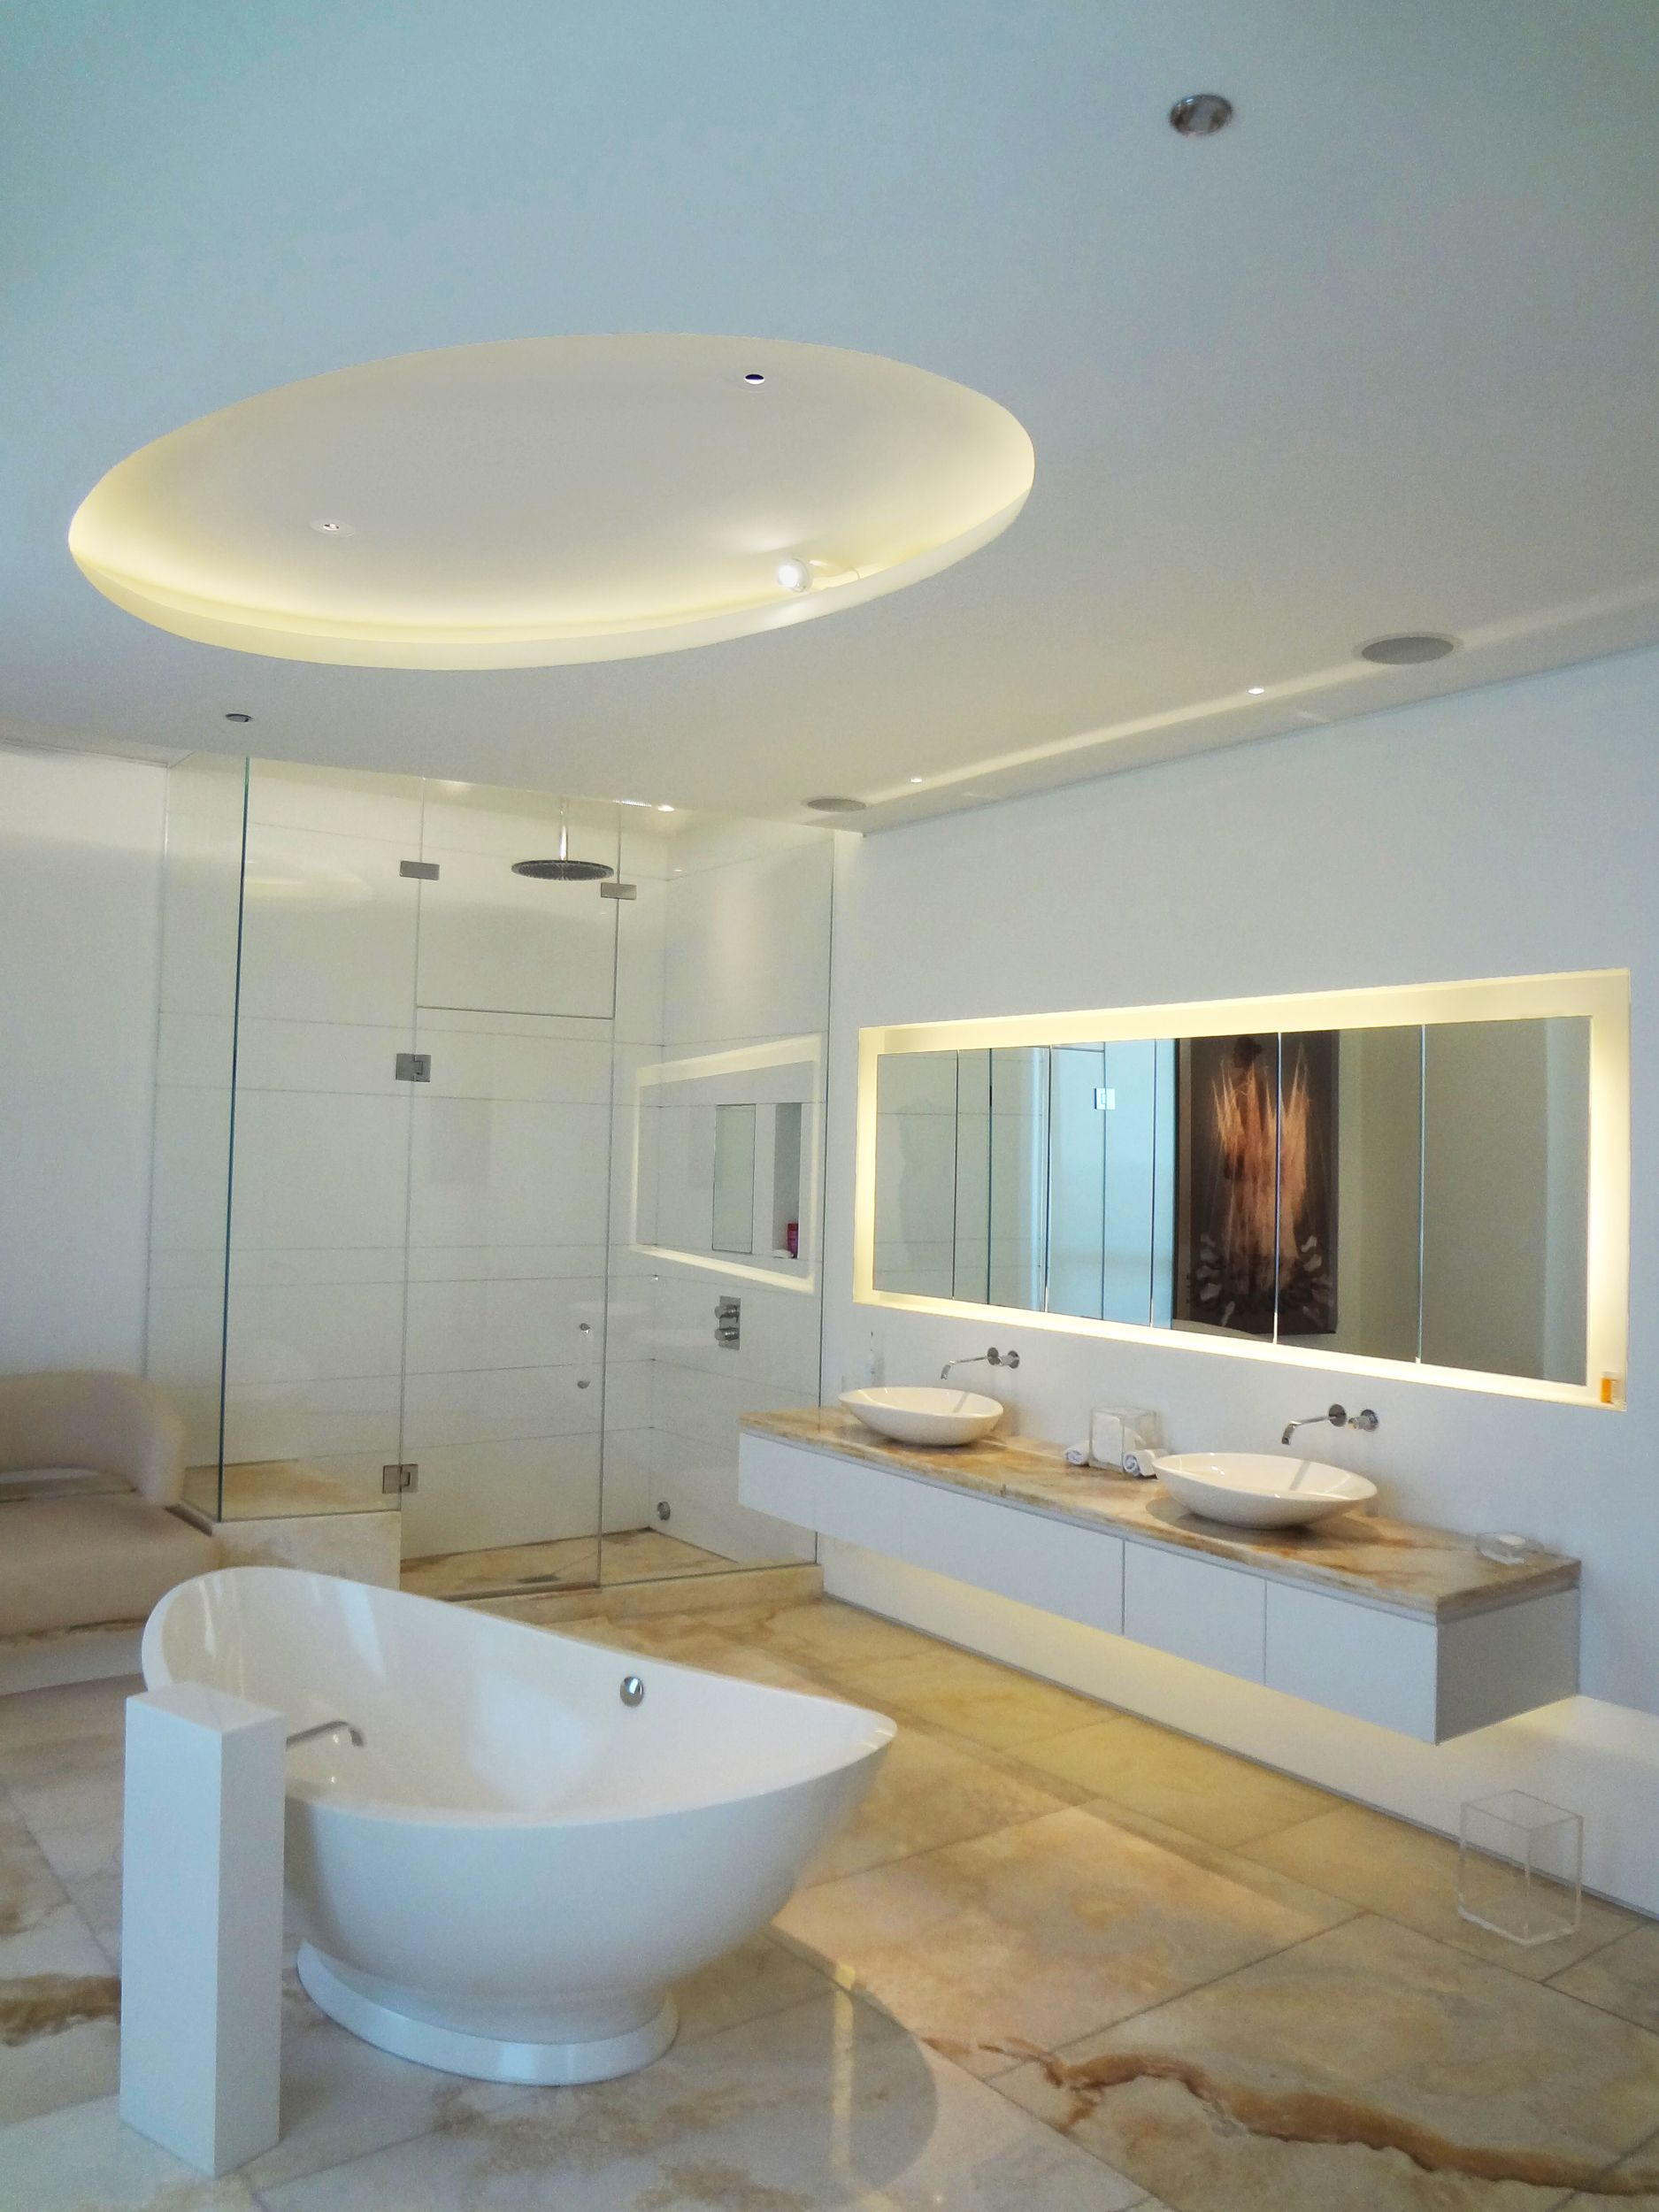 bathroom lighting trends. Lighting , Three Types Of Bathroom Fixtures : For Accent Type With Led Light In Round Coved Ceiling And Vanity Trends R